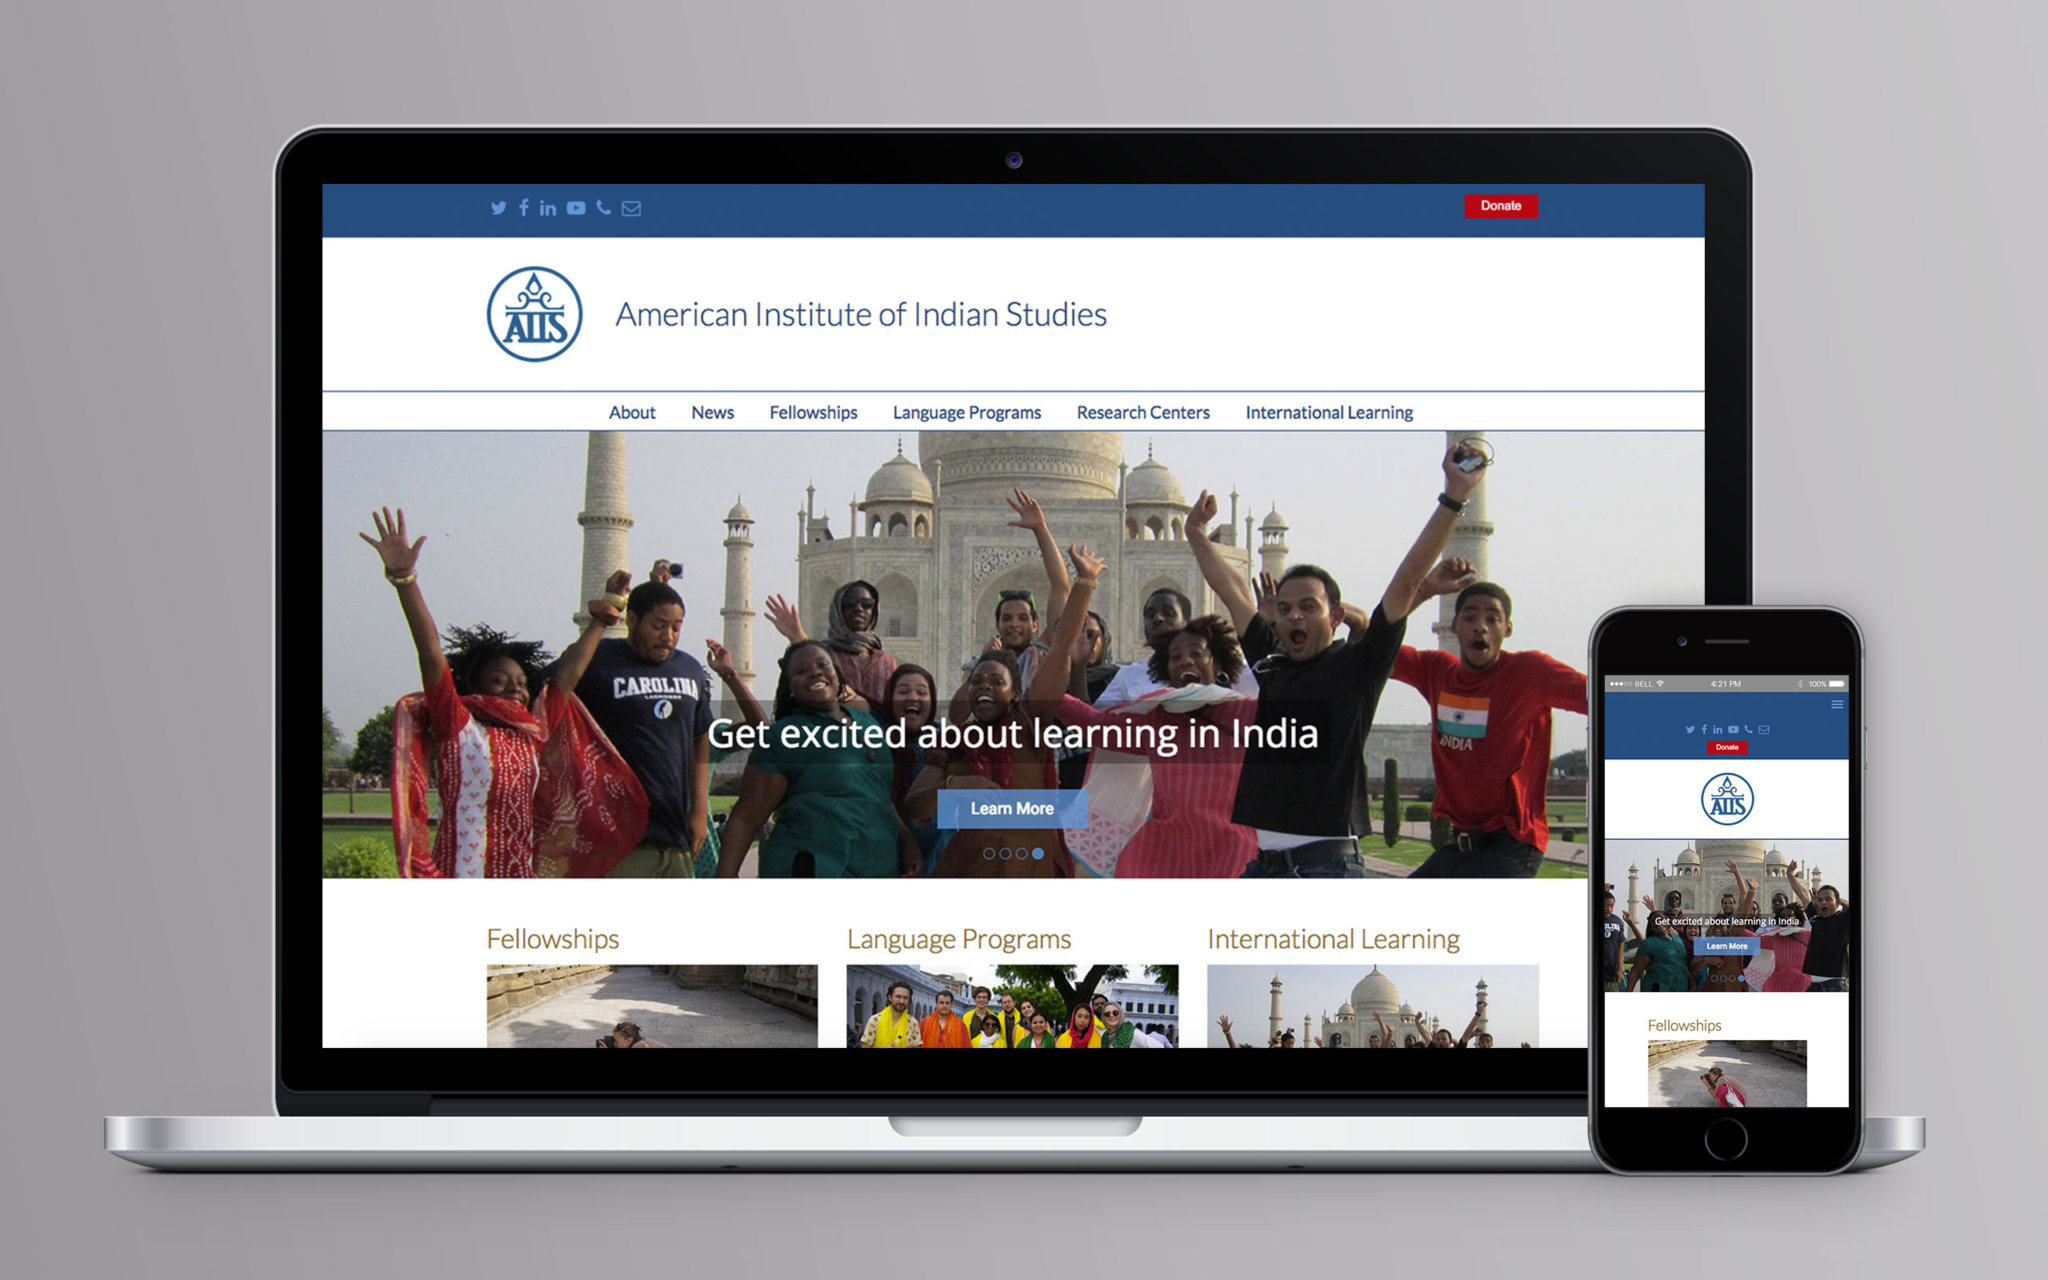 American Institute of Indian Studies American Institute of Indian Studies Website Home